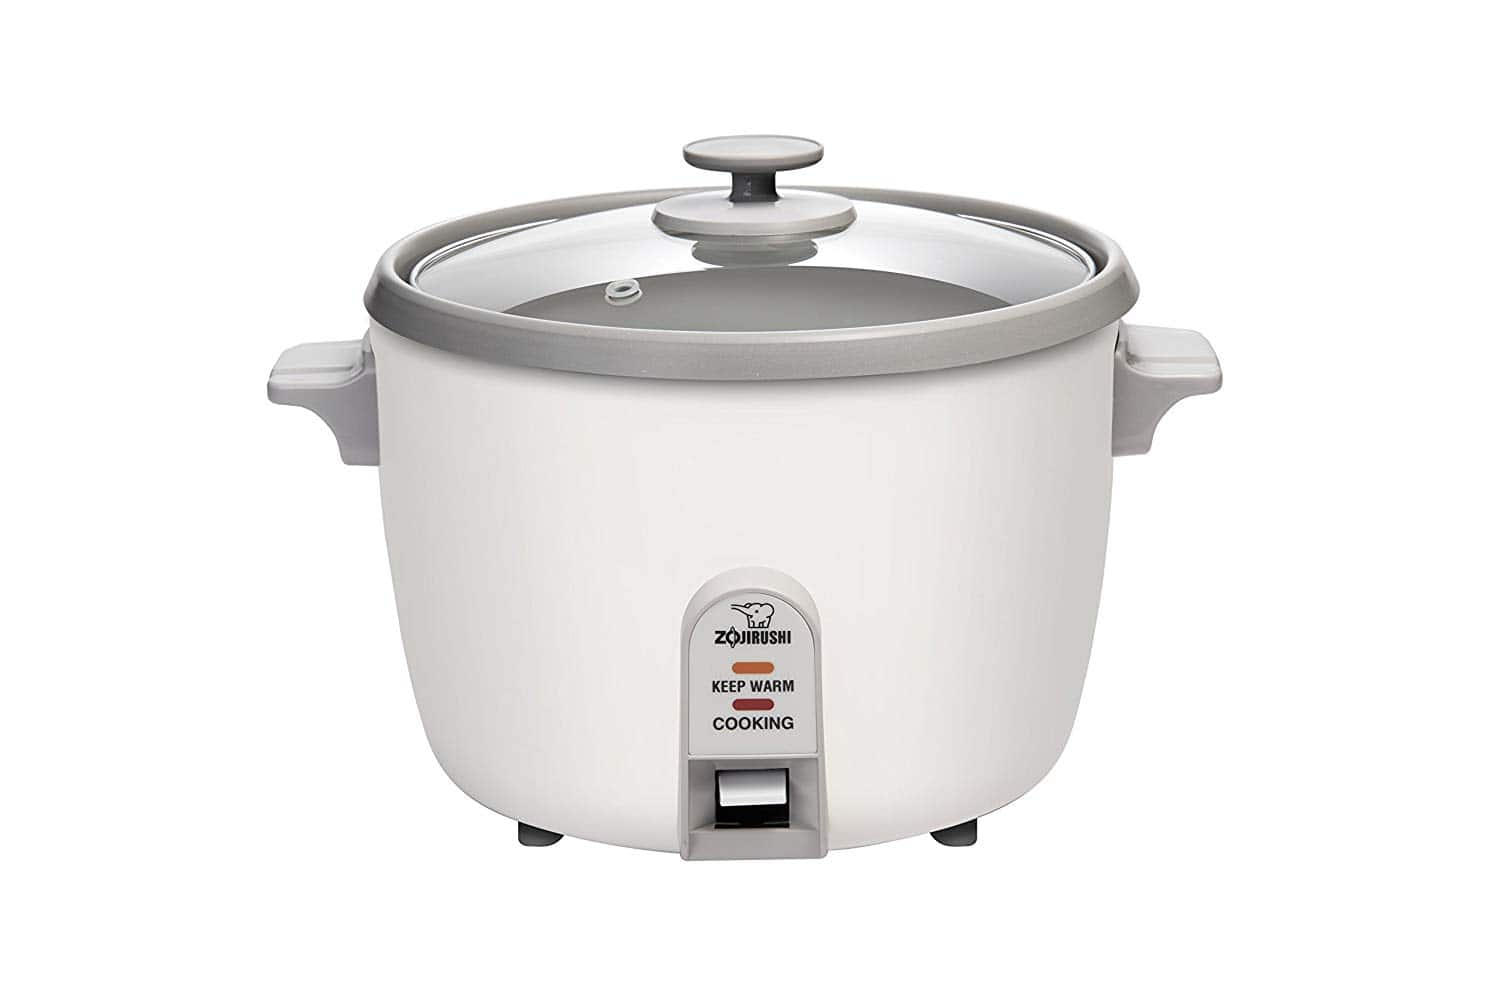 10 Cup Zojirushi NHS-18 (Uncooked) Rice Cooker $42.74 @ Amazon / Home Depot